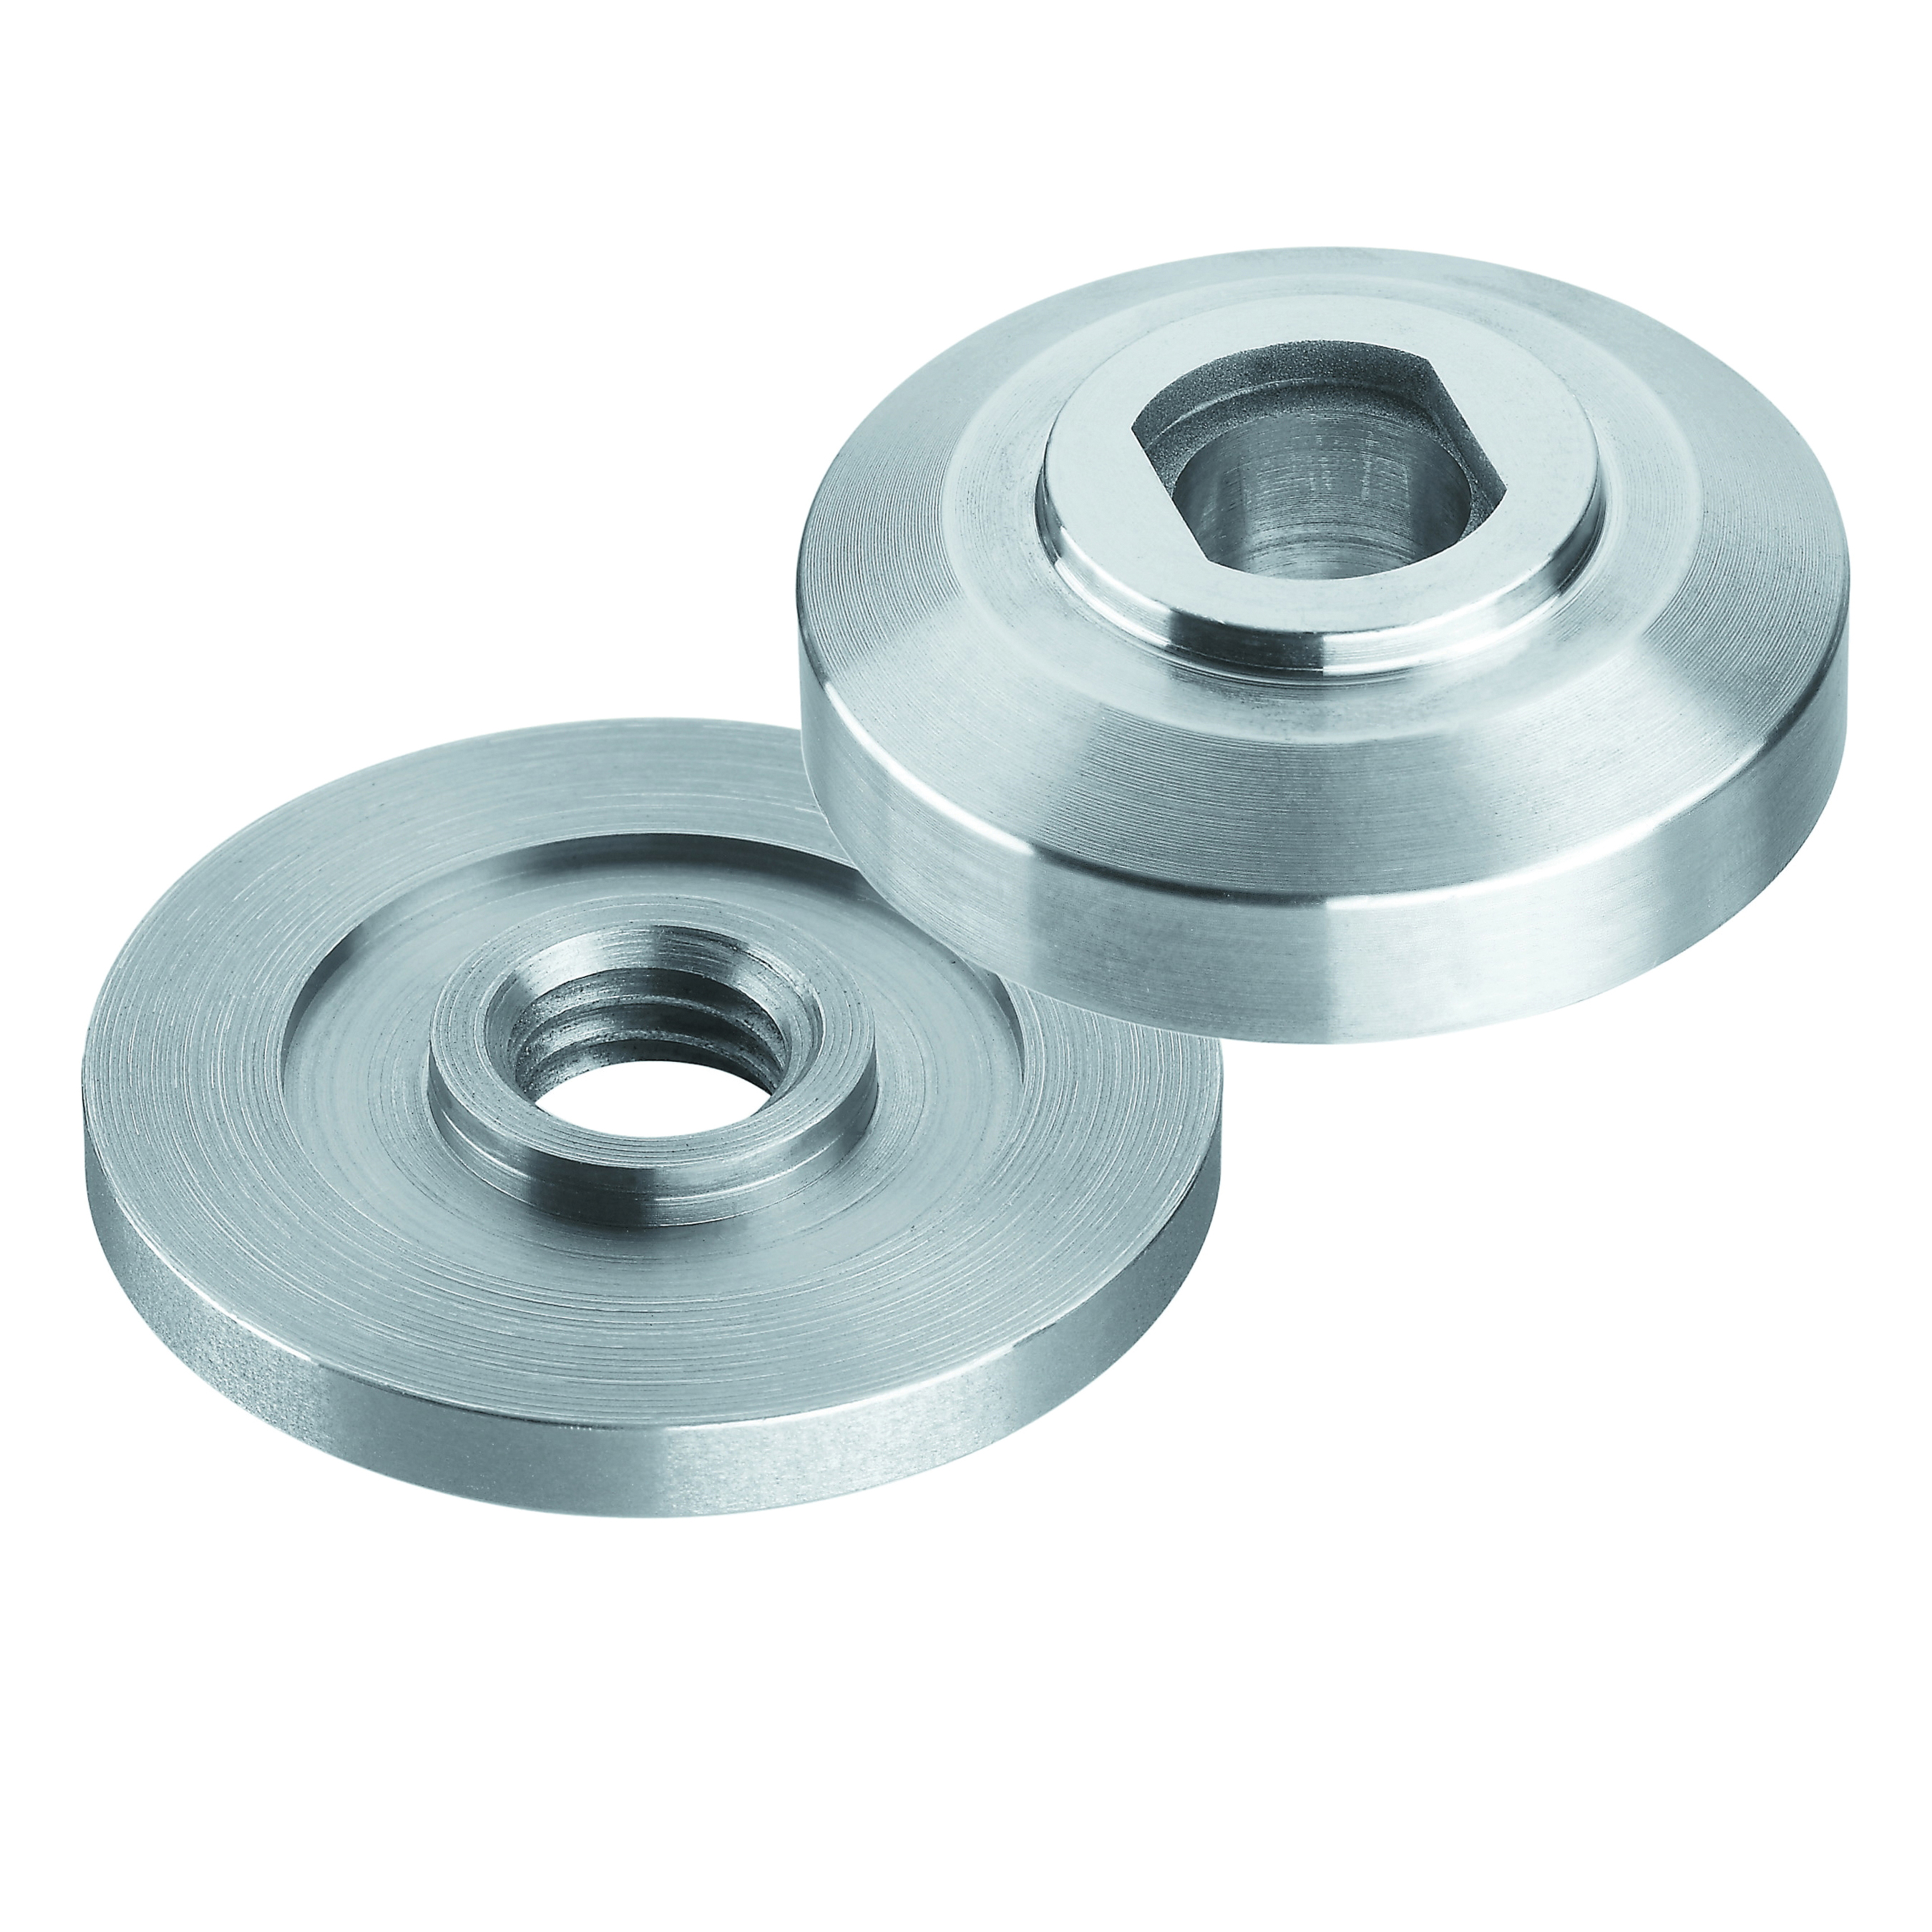 DeWALT® D284932 Flange Set, For Use With Type 1 Cutting Wheel, 5/8-11 Arbor, 5 in W, 8000 rpm